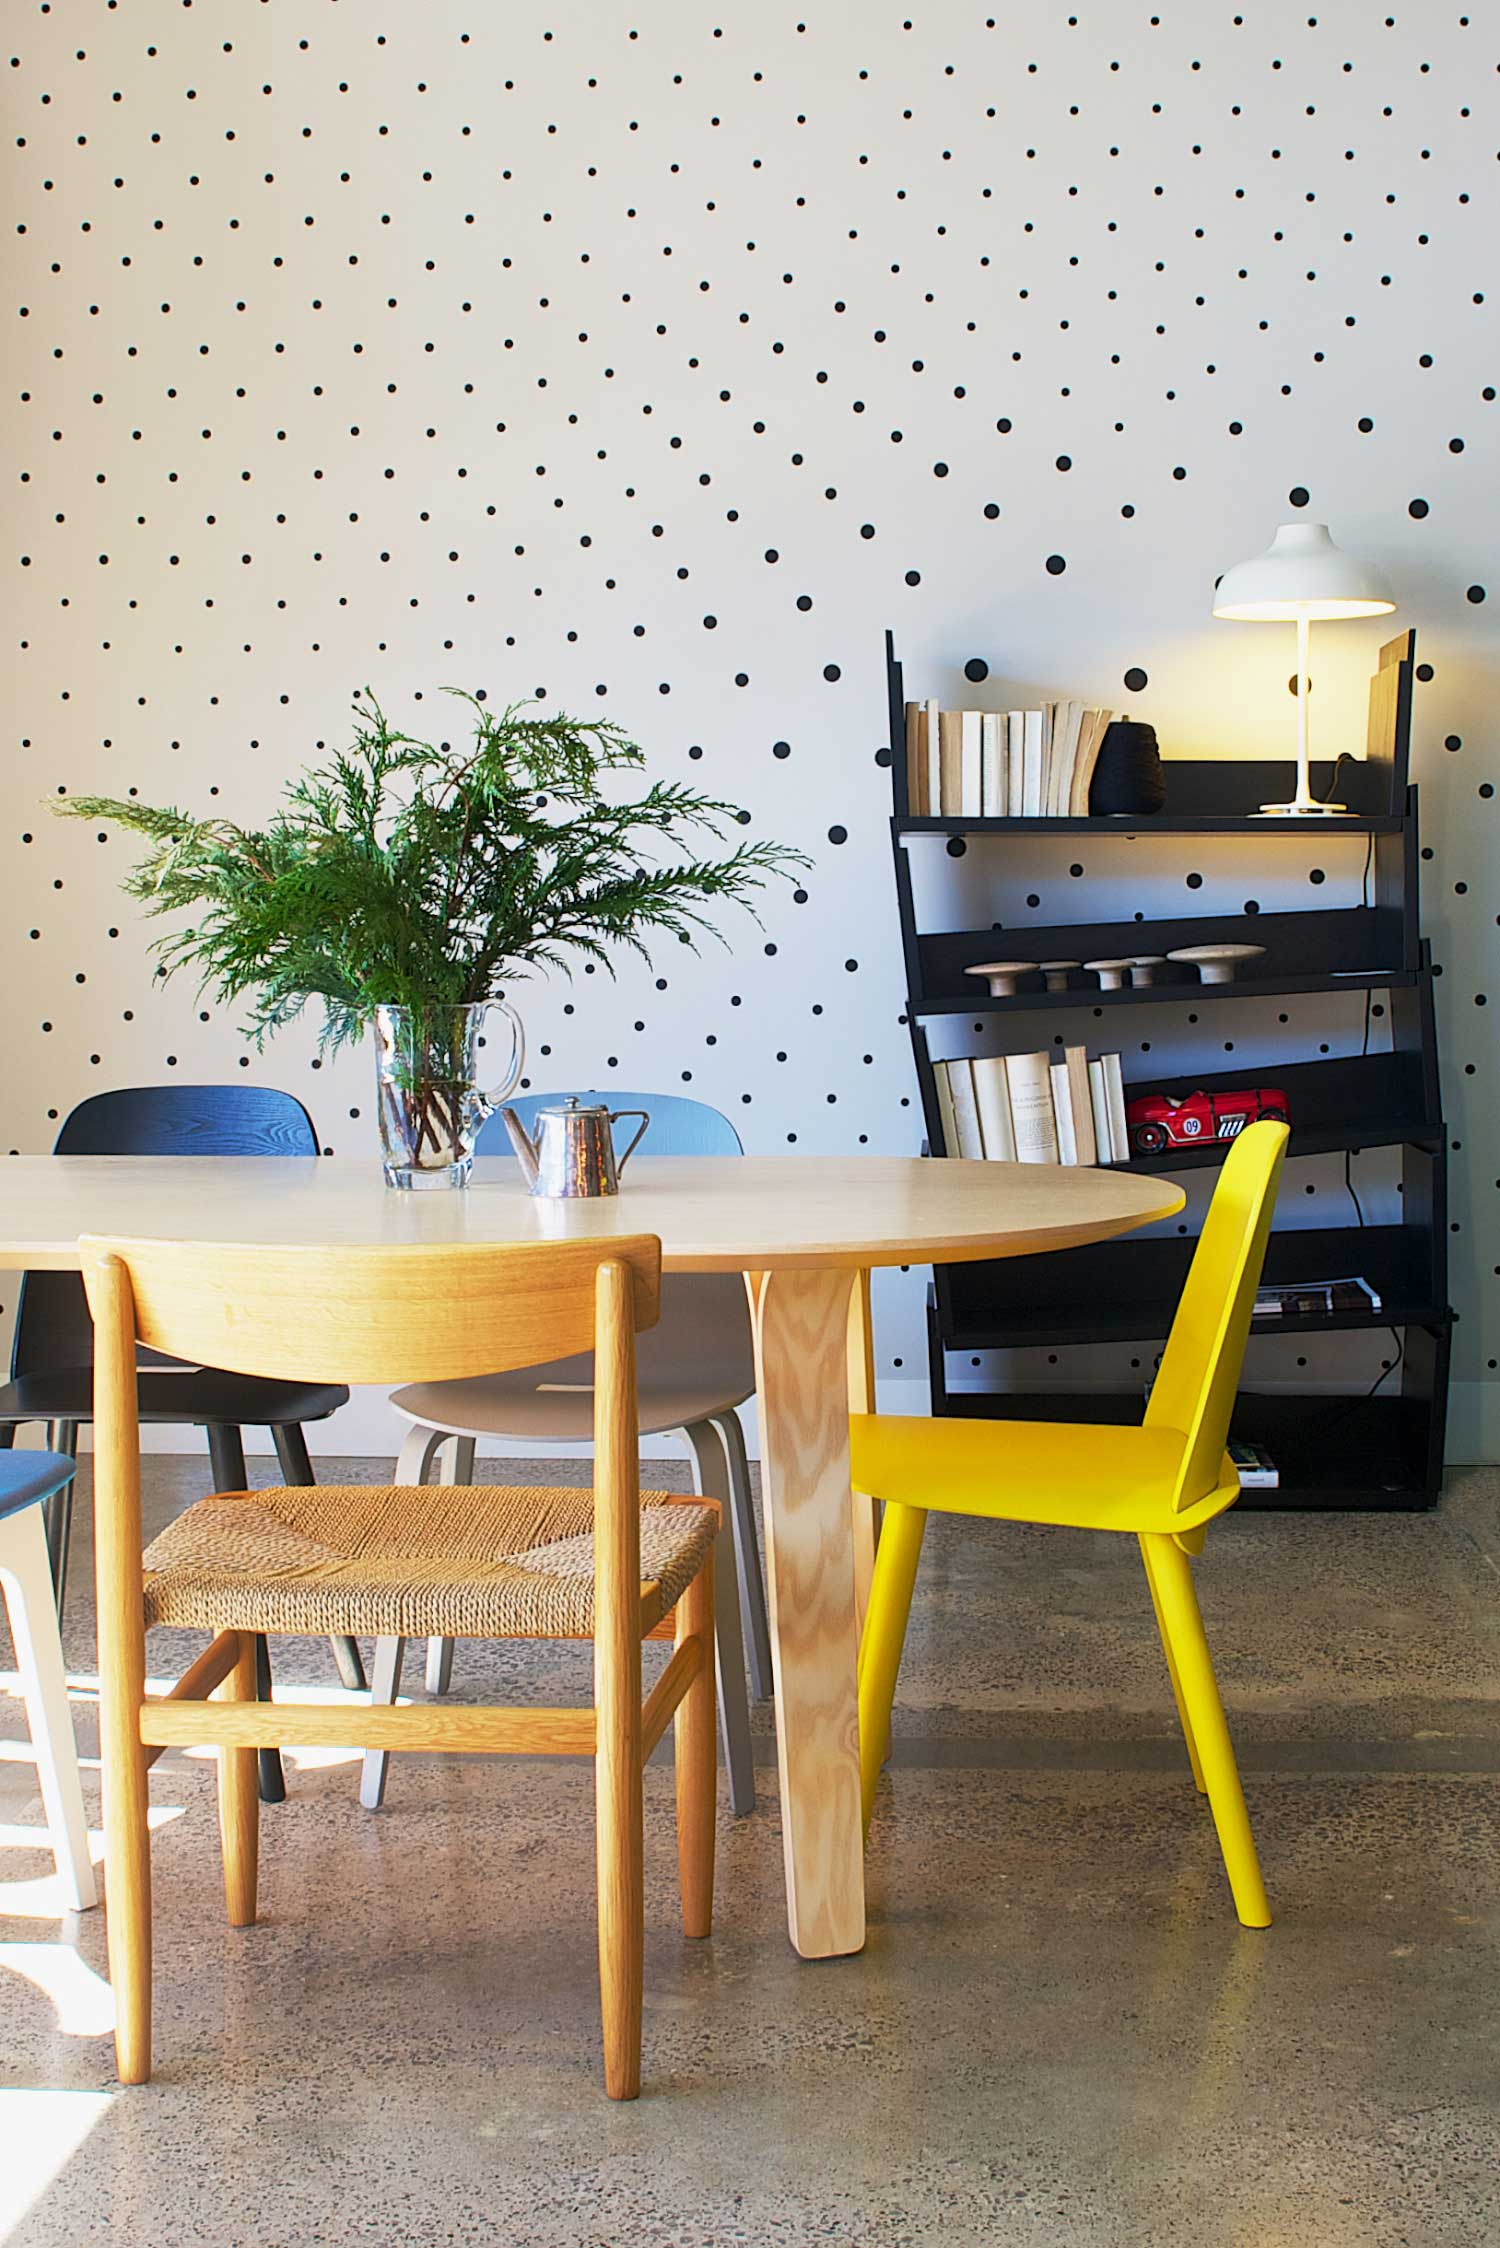 Fred International Sydney Showroom by Yellowtrace. Swedese Divido table,  Karl Anderson & Söner Øresund chair, Muuuto Nerd Chair, Muuto Visu chair. Swedese Black Ivy bookshelf. White Bolero light by Ruben Lighting. Custom black dot wall decal by War Design. Photo by Nick Hughes.